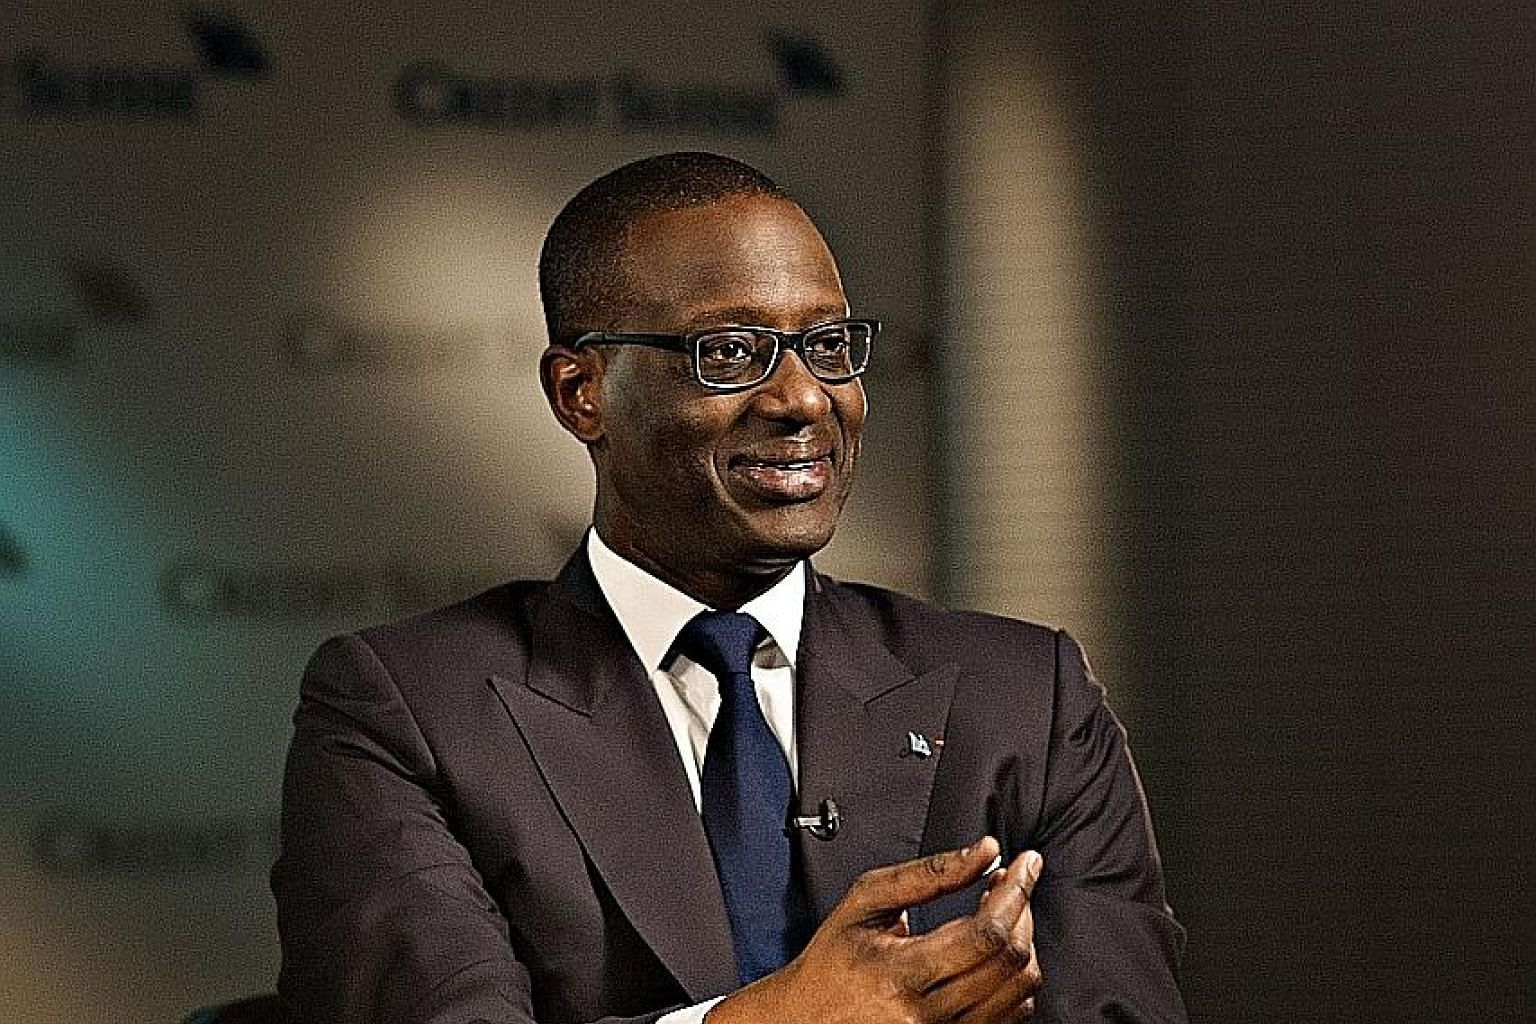 Mr Tidjane Thiam said the capital raise will strengthen the bank's balance sheet and allow it to invest in growth at highly attractive returns. The bank reported net profit of 596 million Swiss francs for the first three months of the year.